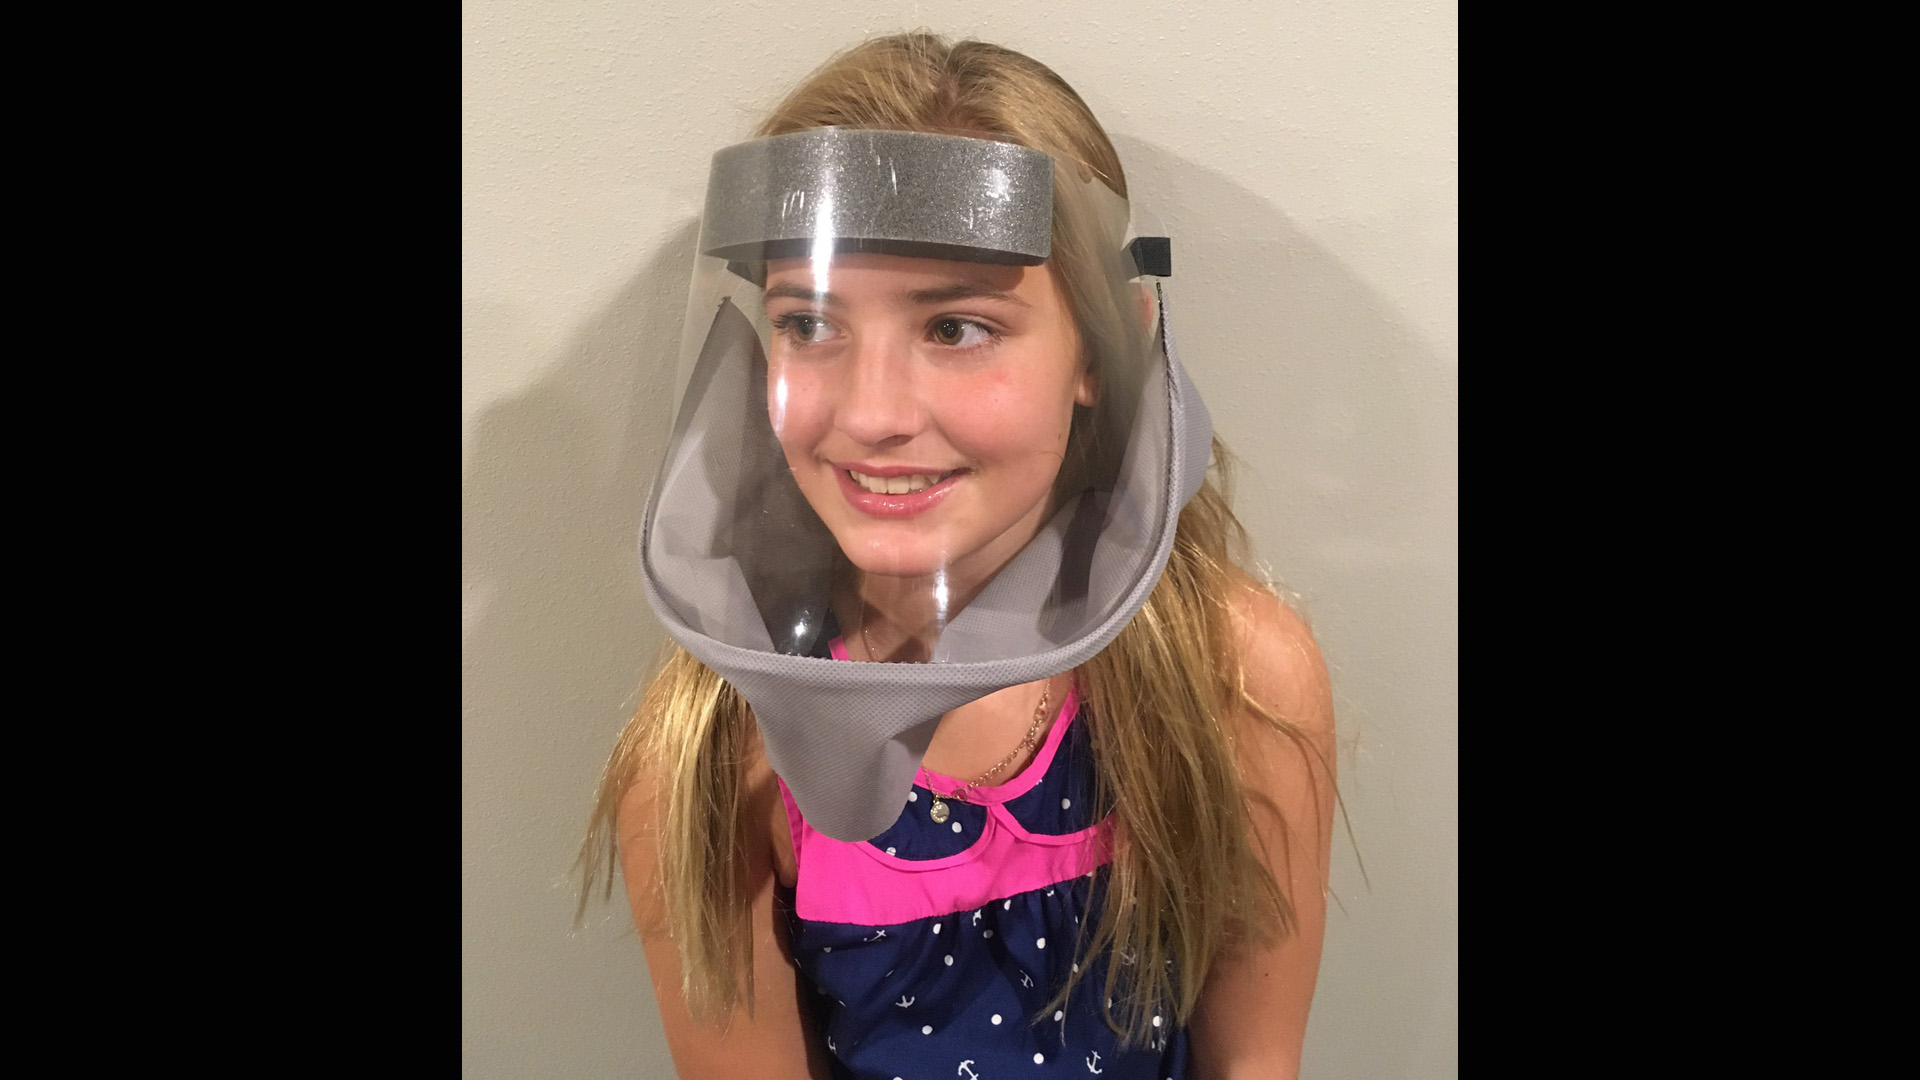 A reusable face shield made for children made by Barber Packaging.